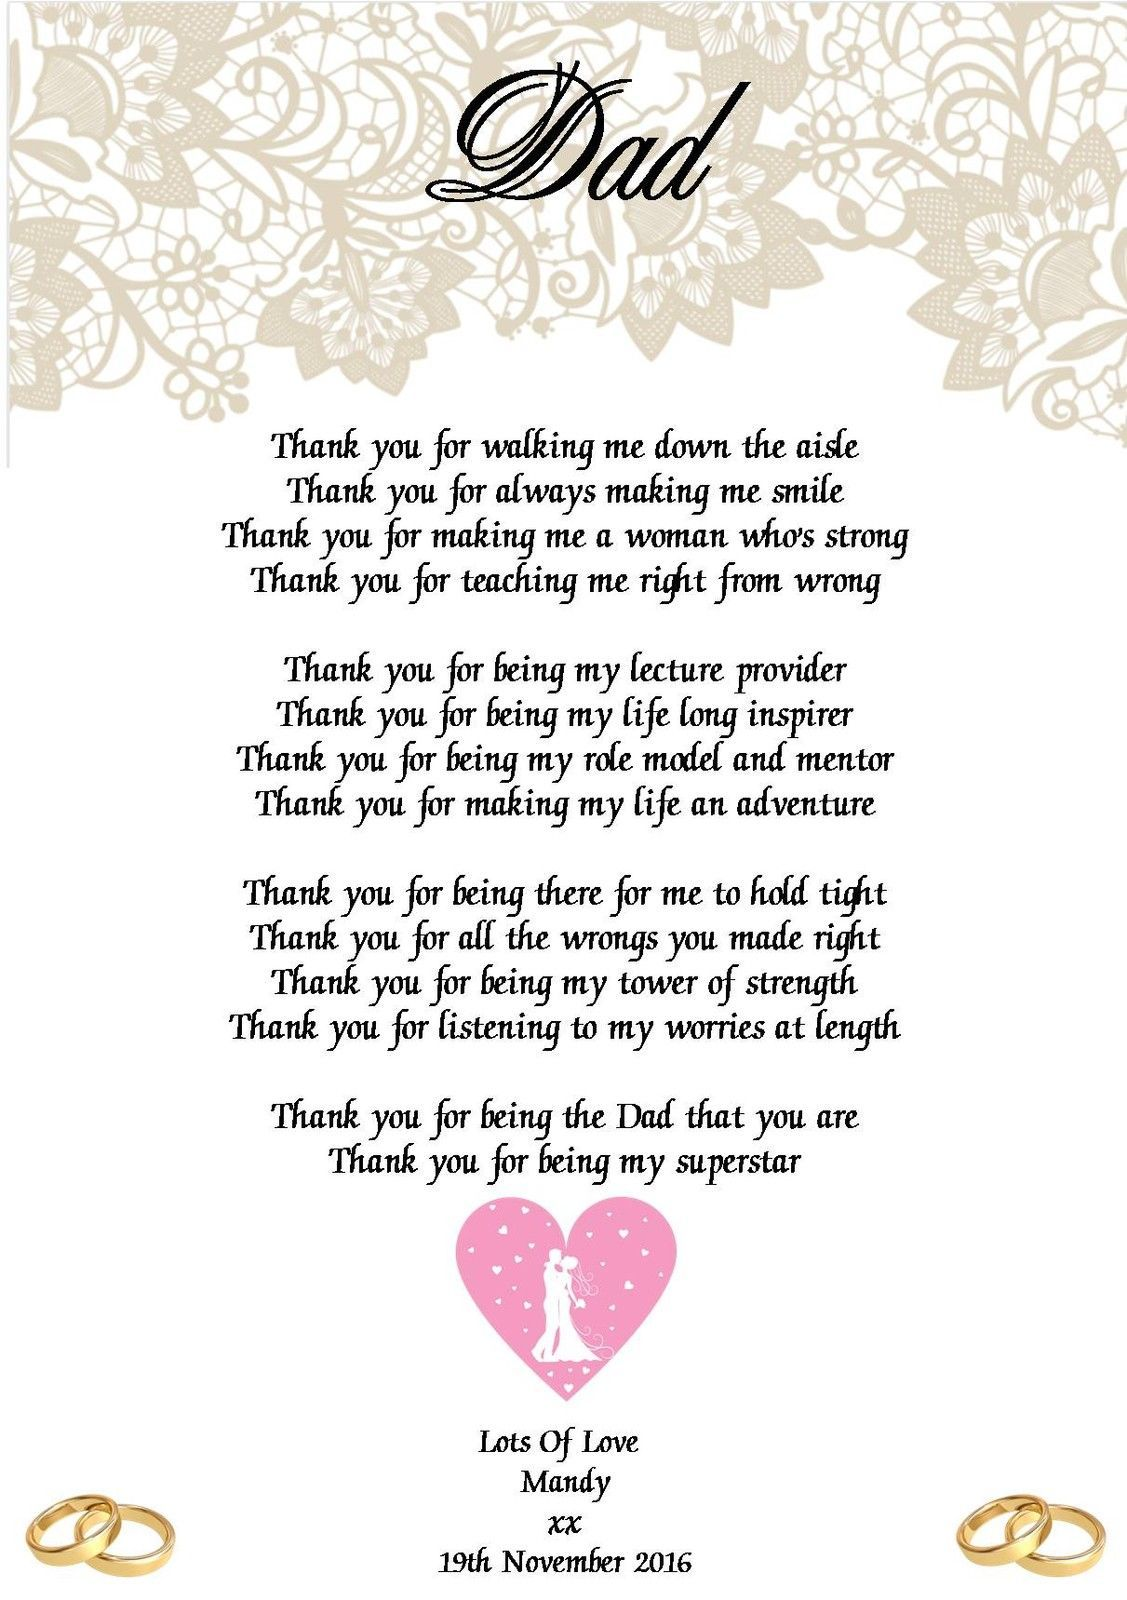 Wedding Day Thank You Gift Father Of The Bride Poem A5 Photo 260gms Ebay Father Of The Bride Wedding Gifts For Families Bridesmaid Poems